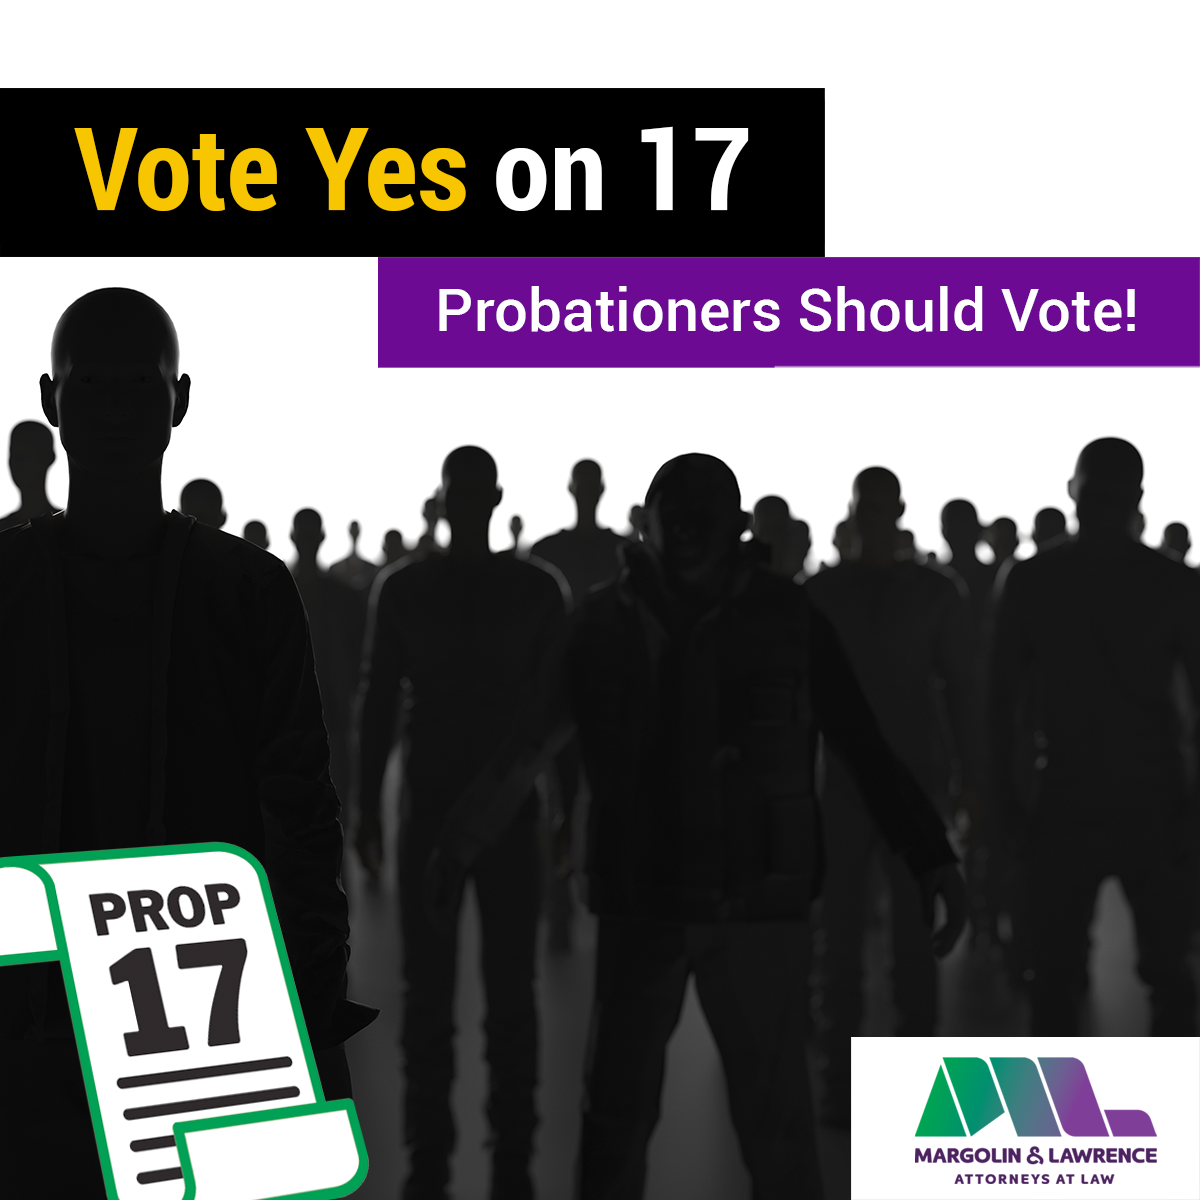 Vote Yes on 17; Parolees Should Vote!